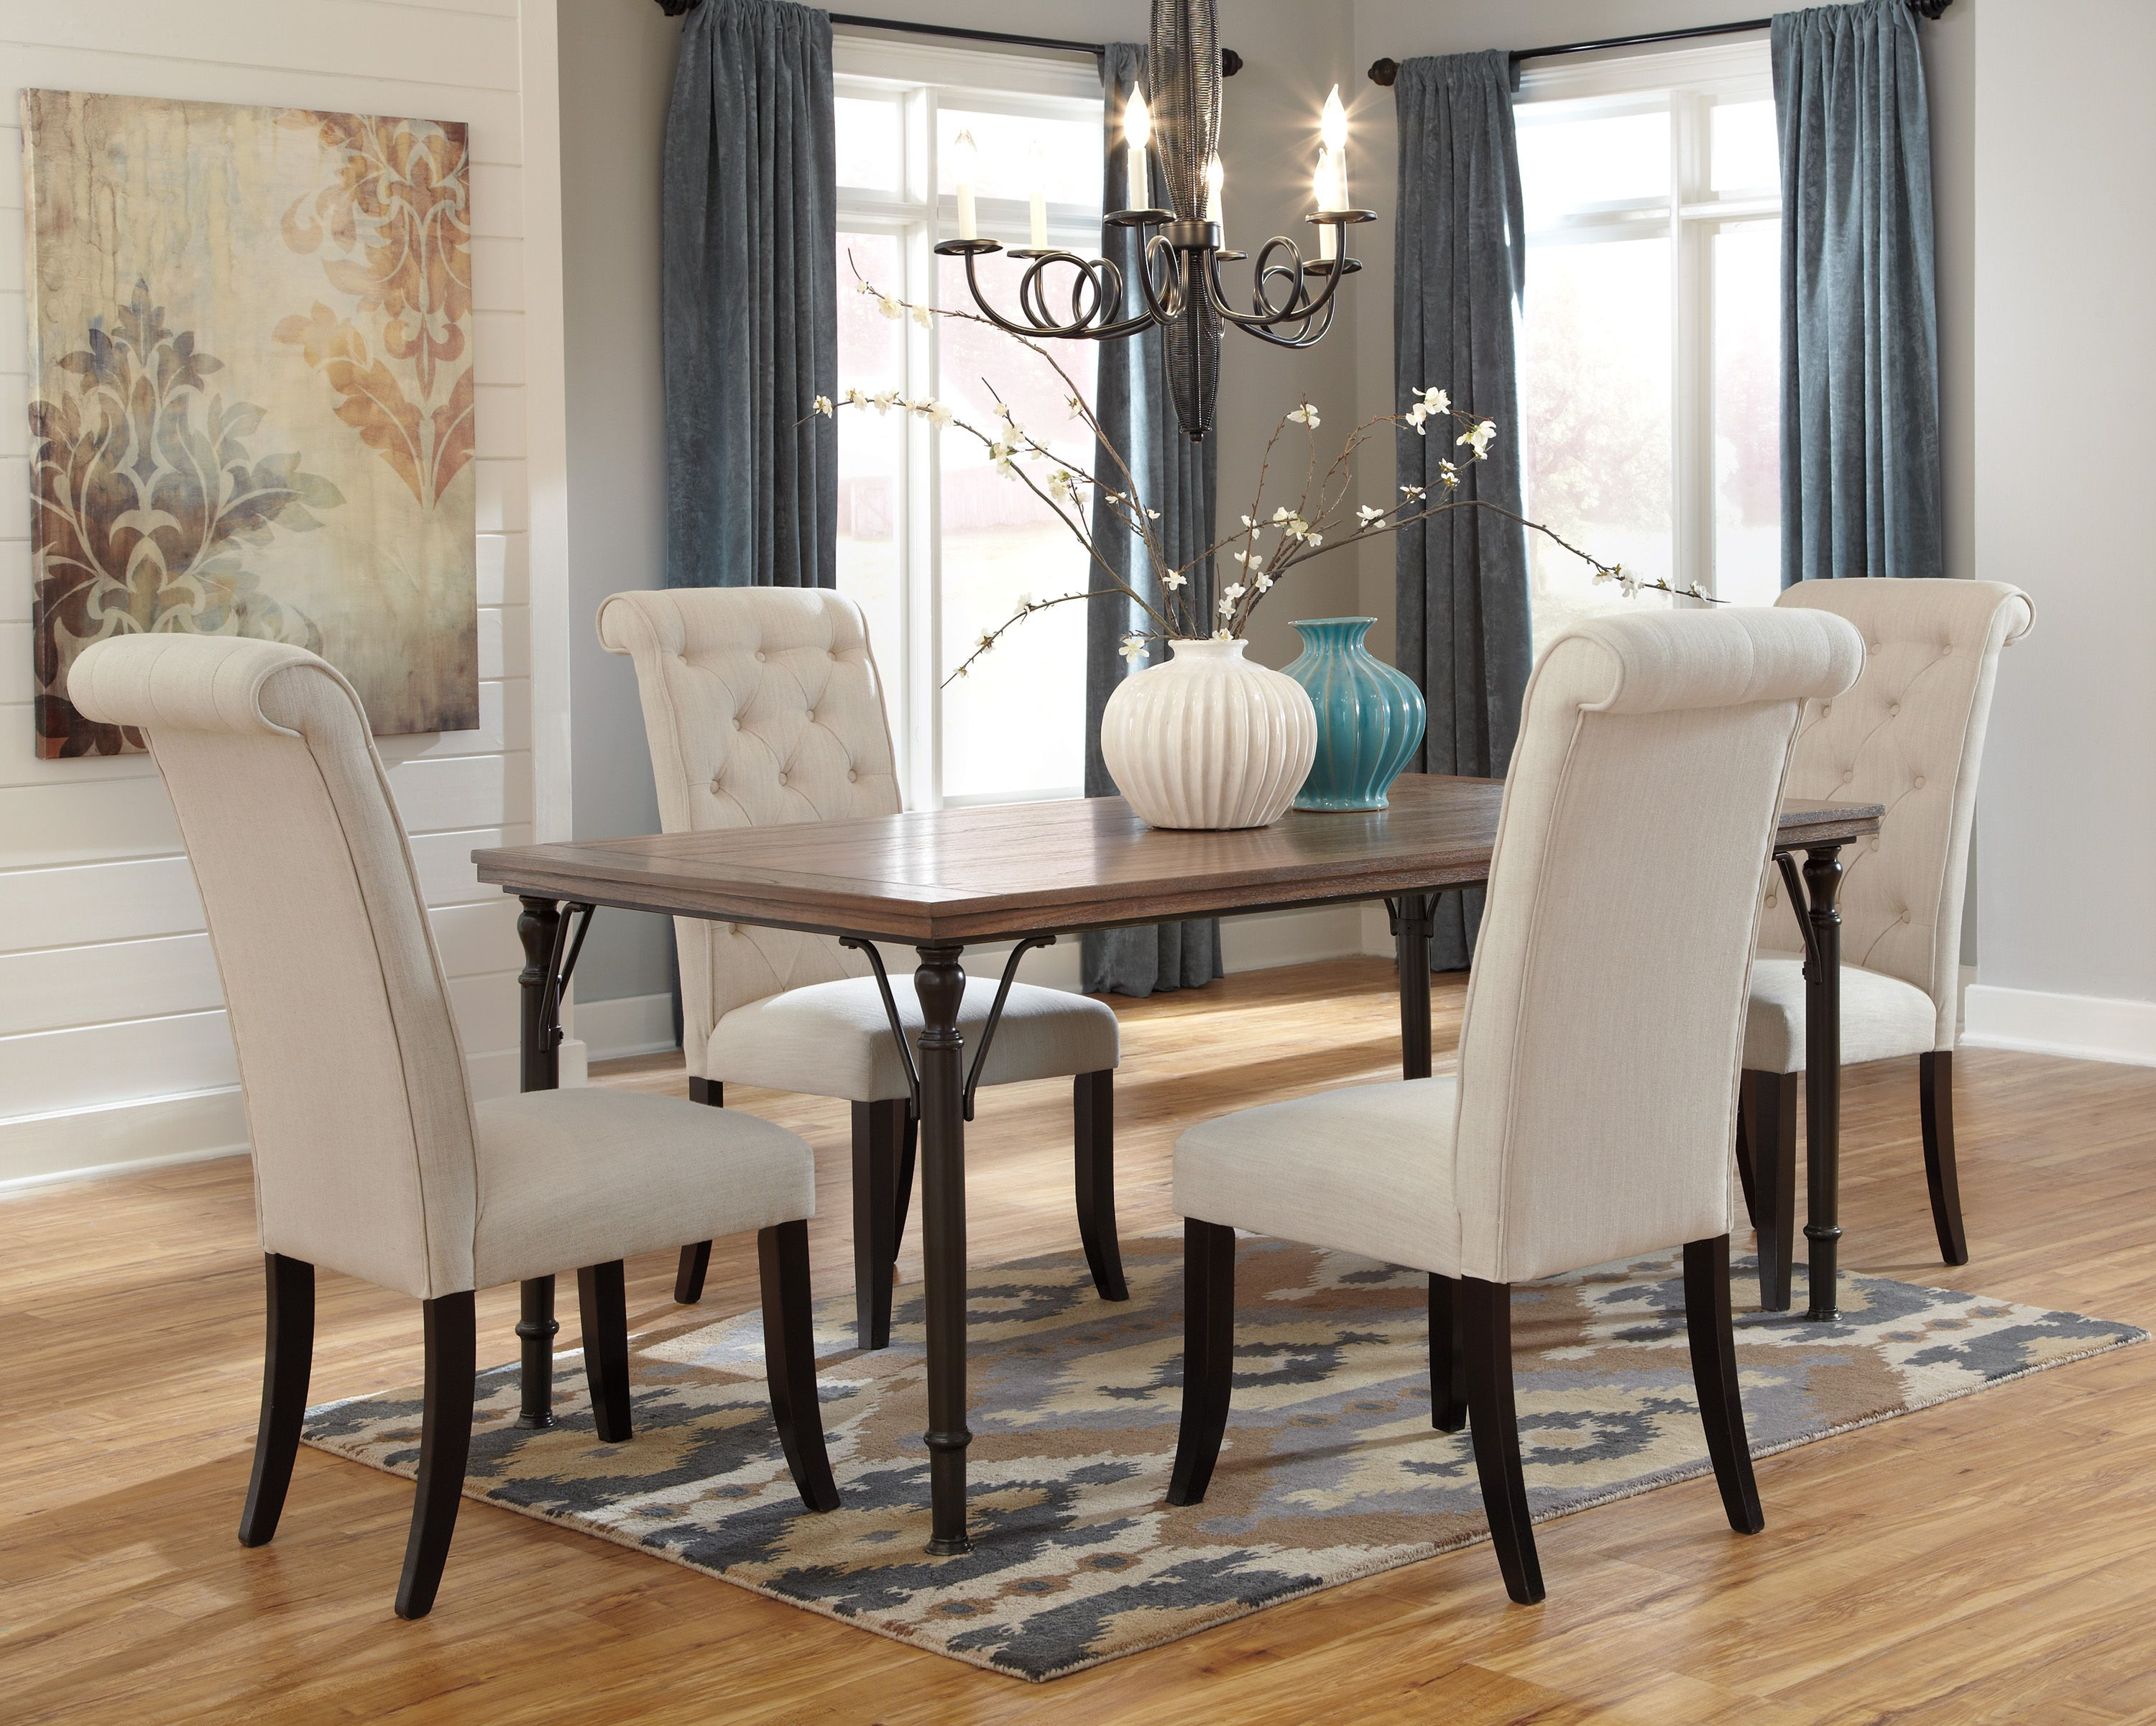 Awesome Tripton Rectangular Dining Room Table U0026 4 UPH Side Chairs By Signature  Design By Ashley. Get Your Tripton Rectangular Dining Room Table U0026 4 UPH  Side Chairs ...